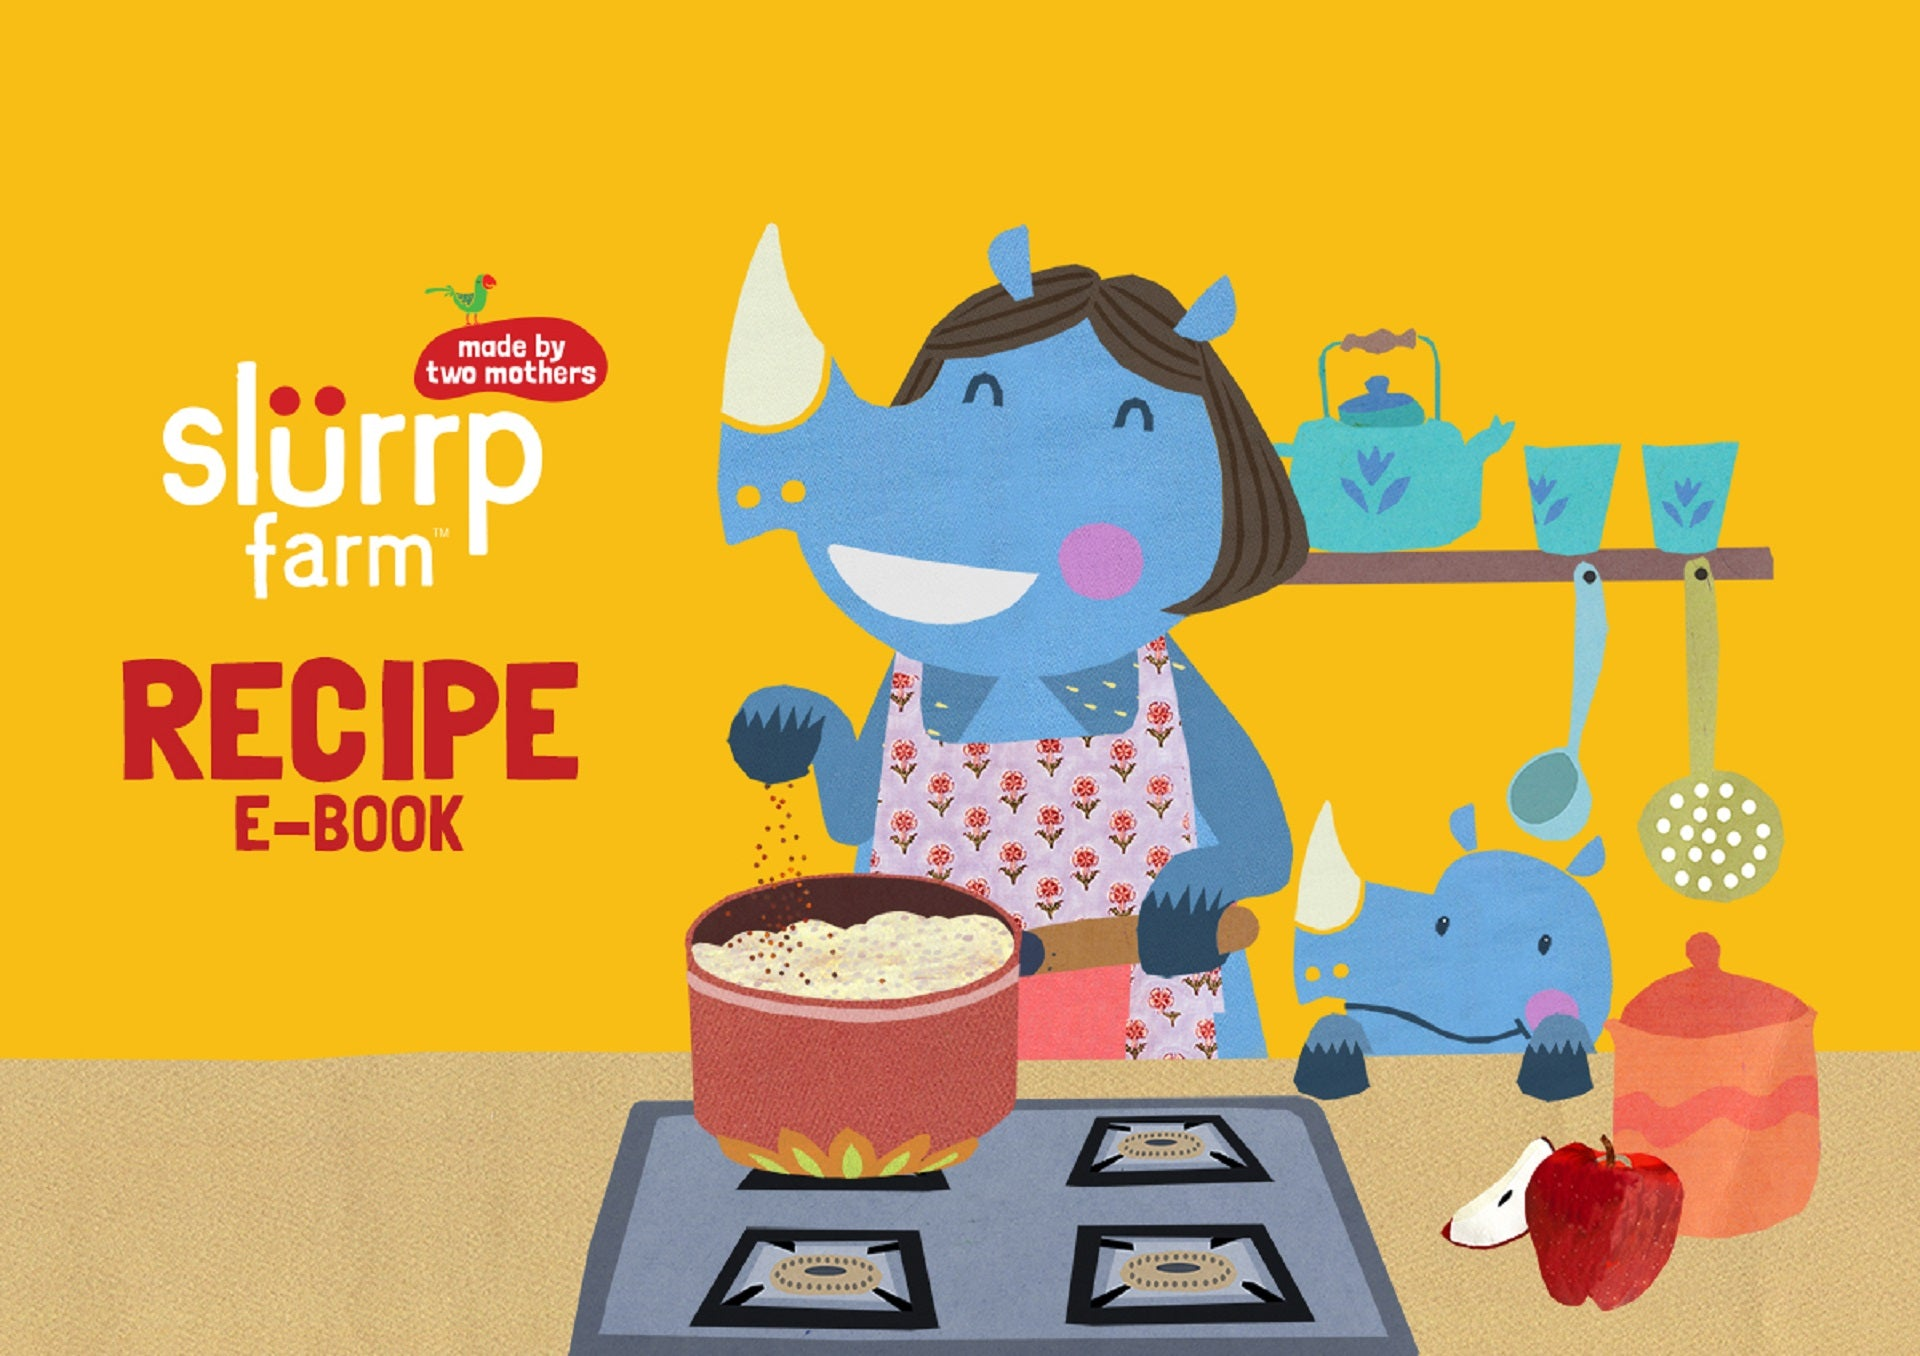 recipe e-book subscription